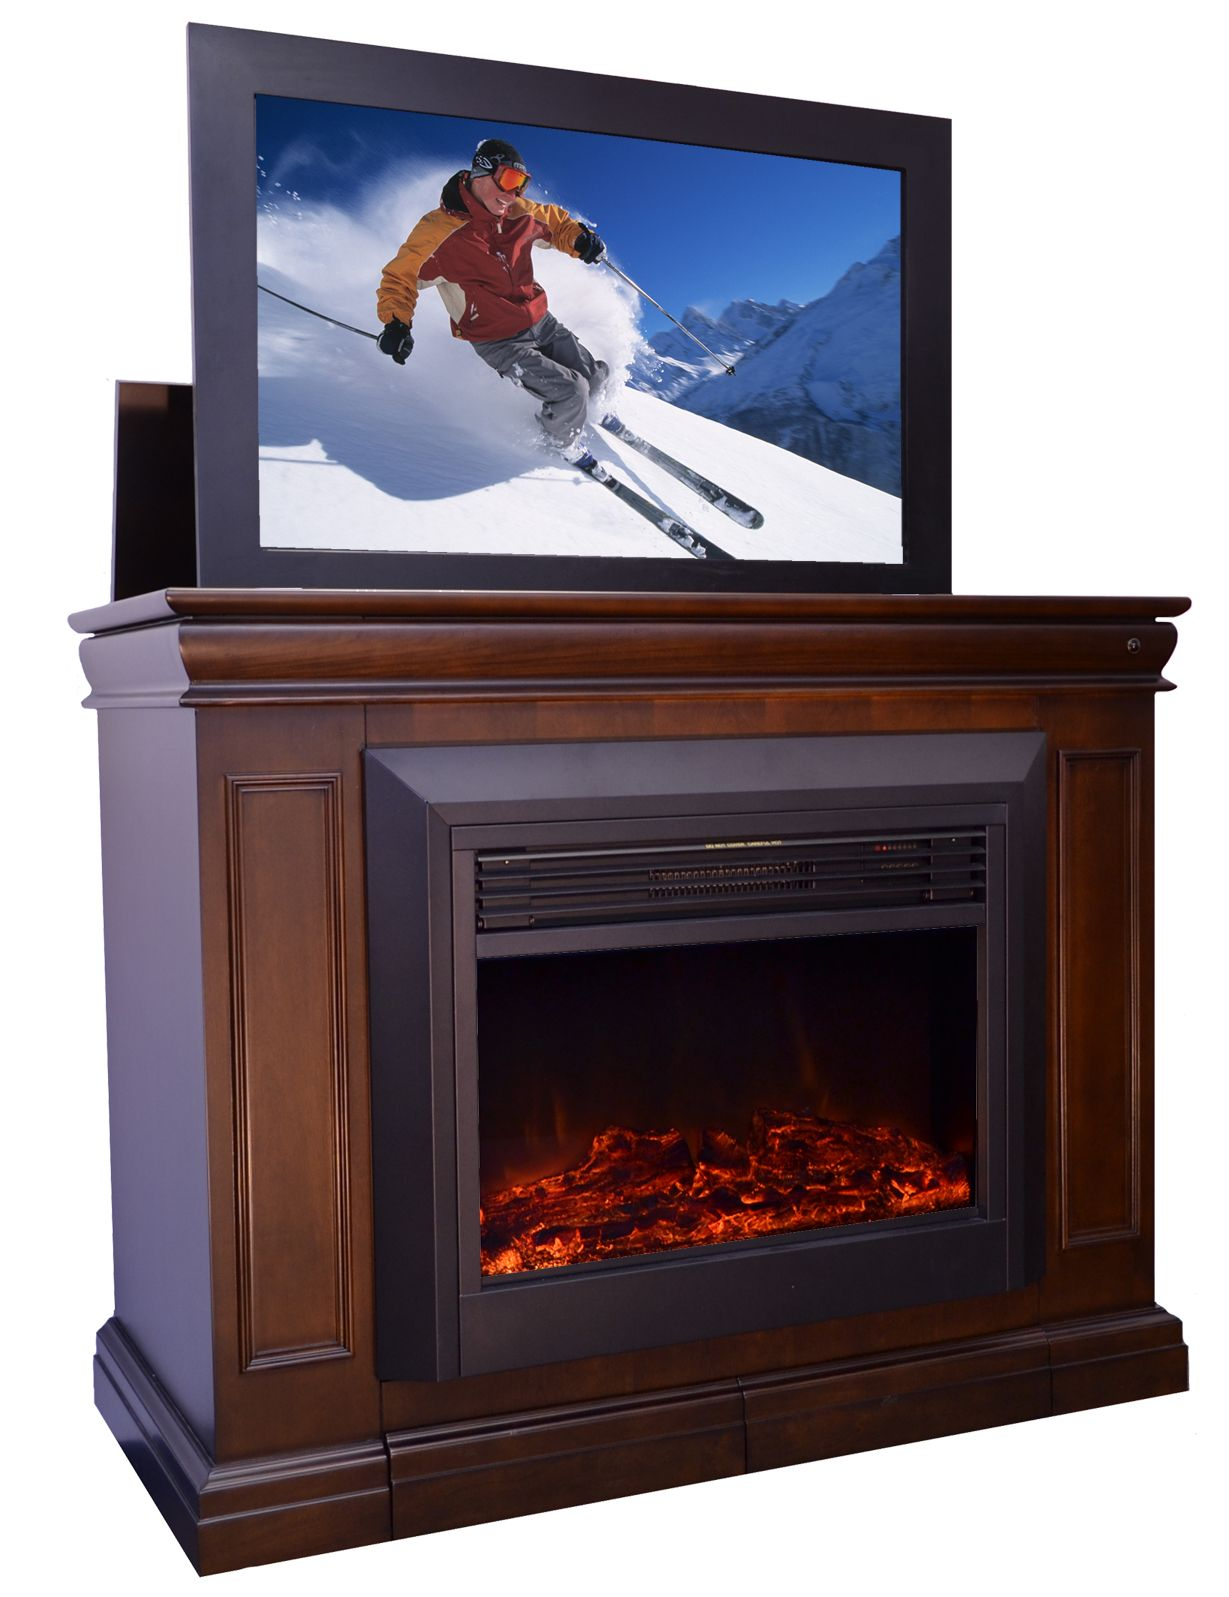 tv ideas debonair to fireplace cabinet with dw artistic home electric stand image depot cool stands